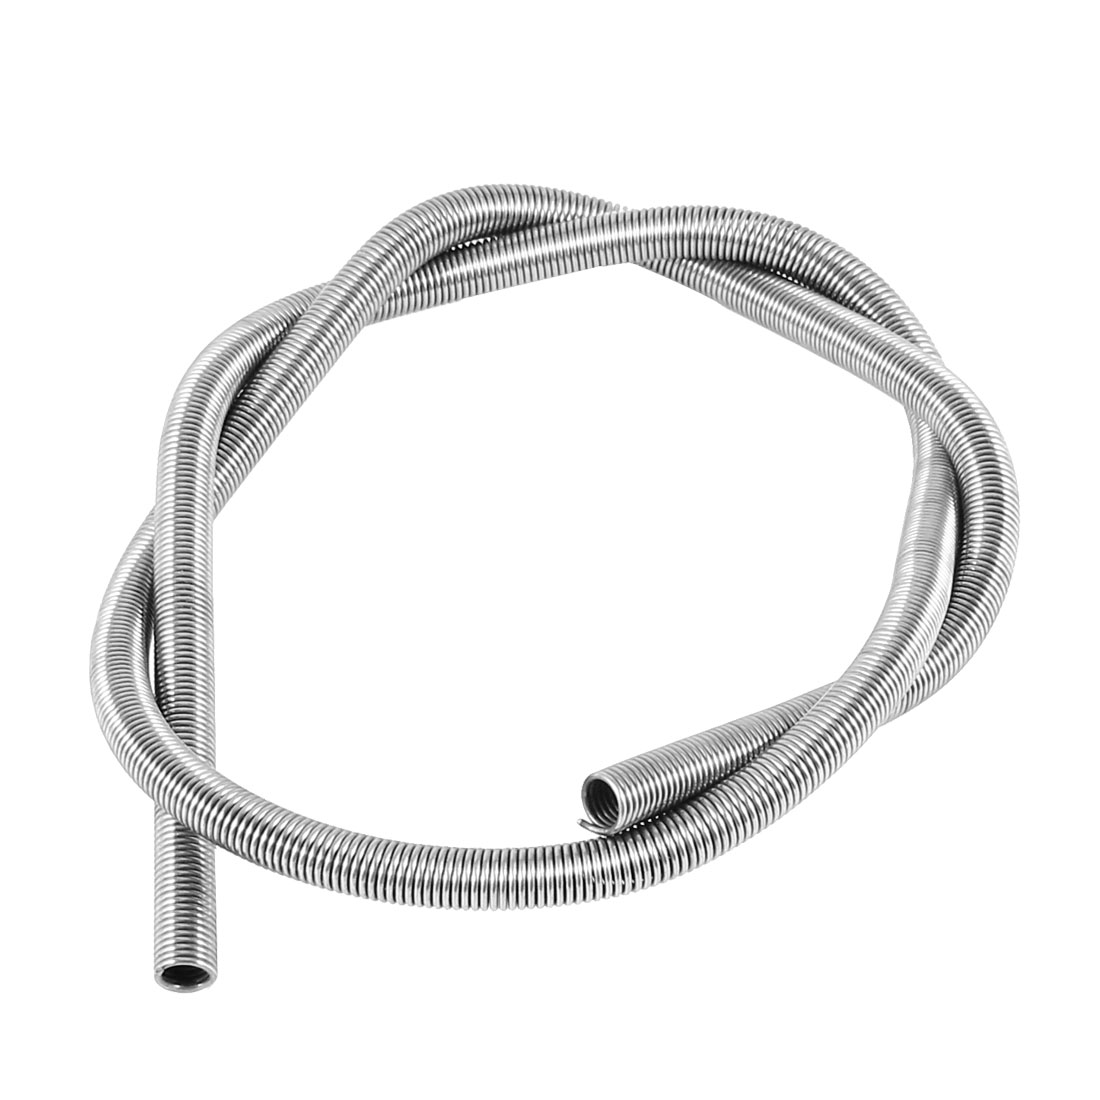 220V 1200W Watts 45cm x 5mm Heater Heating Heater Element Coil Wire Leads for Kiln Furnace